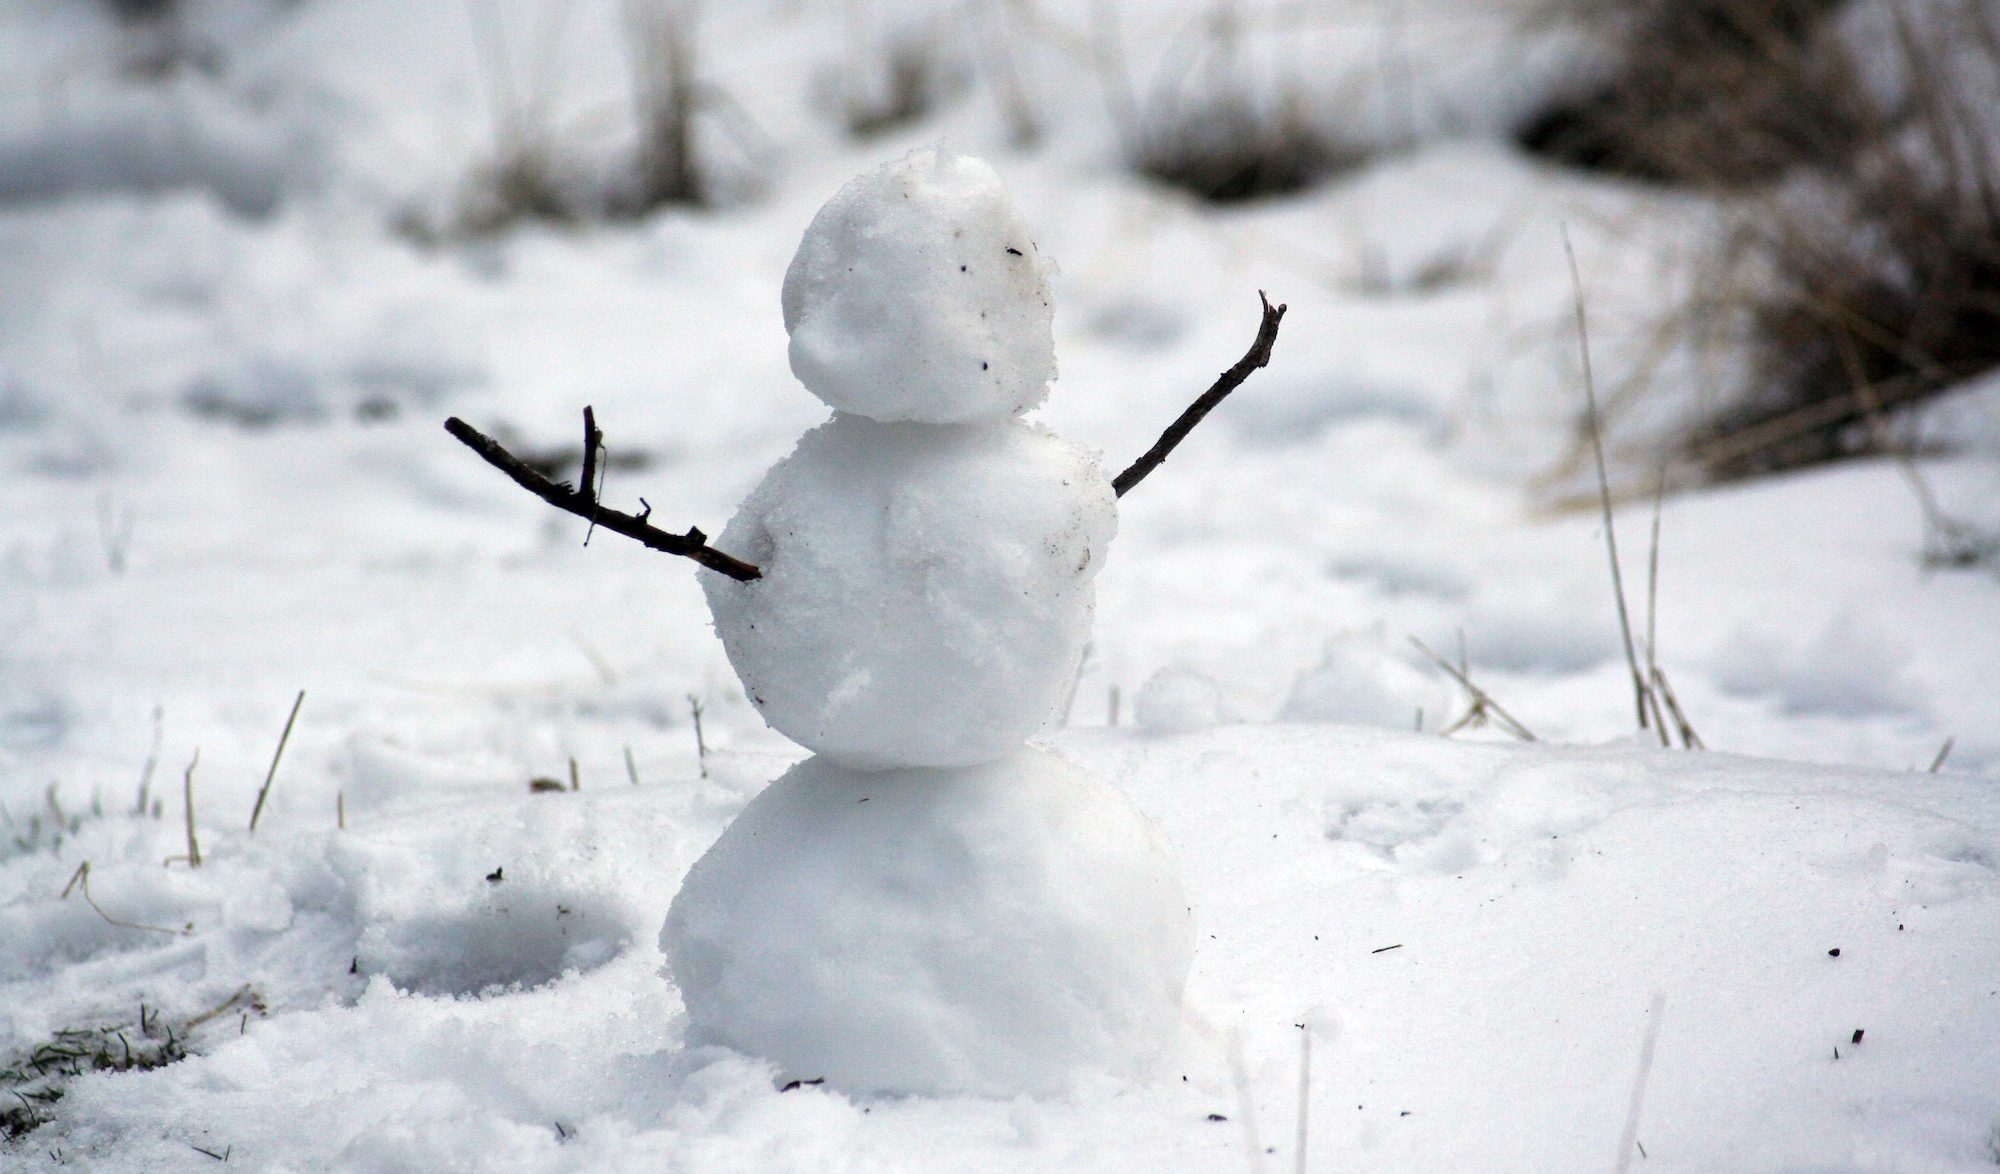 Bonhomme de neige Photo par Nathan Wolfe/Unsplash